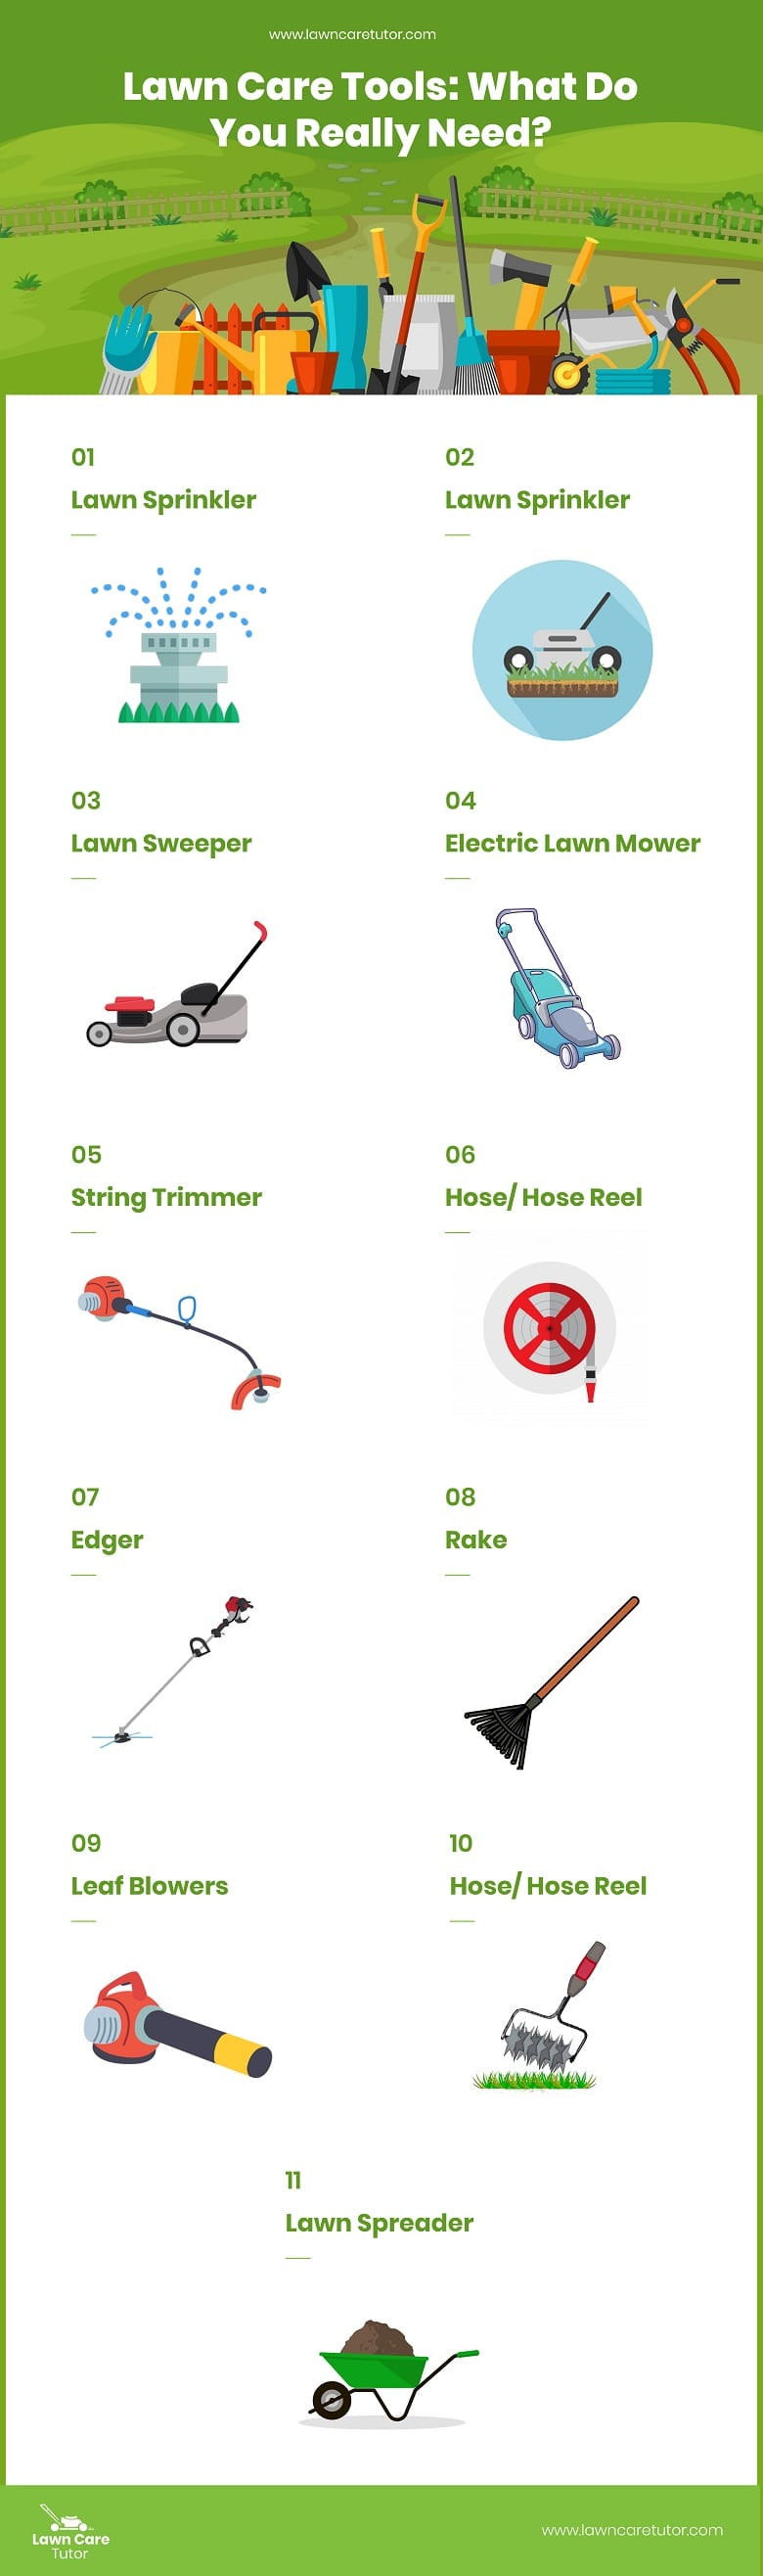 Lawn Care Tools